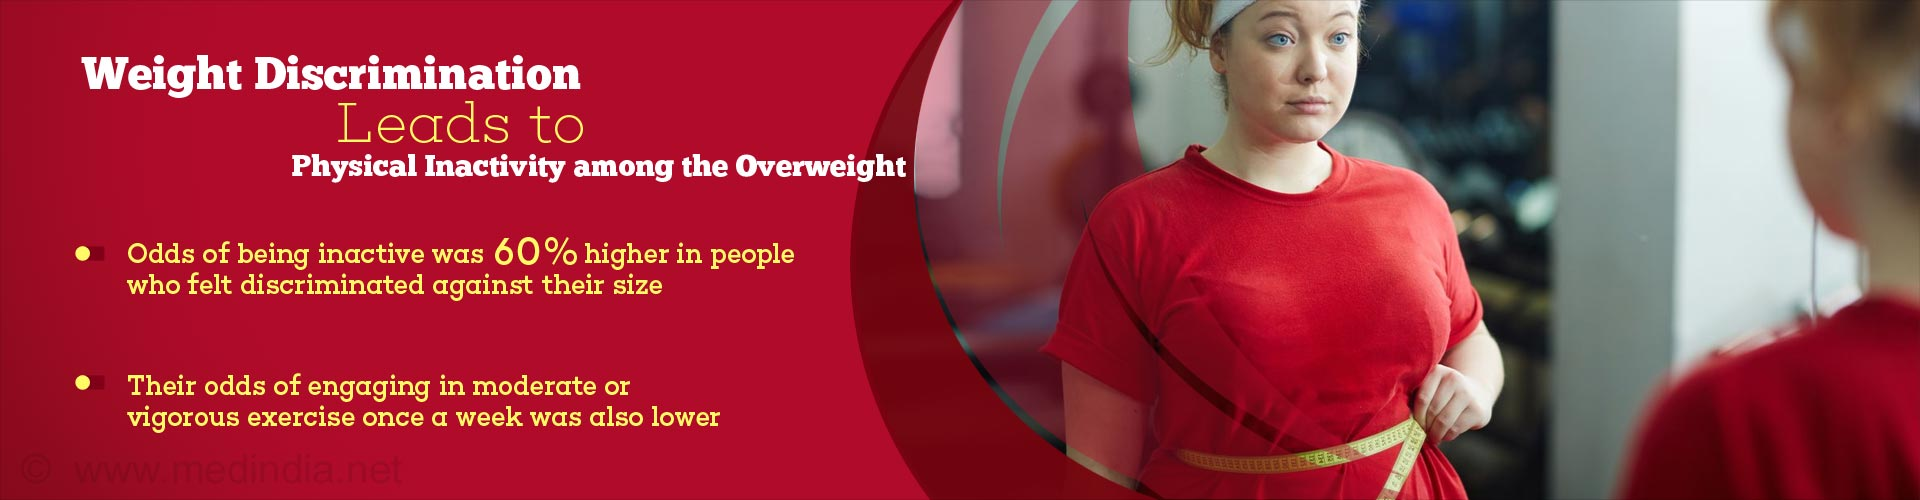 weight discrimination leads to physical inactivity among the overweight - odds of being inactive was 60% higher in people who felt discriminated against their size - their odds of engaging in moderate or vigorous exercise once a week was also lower